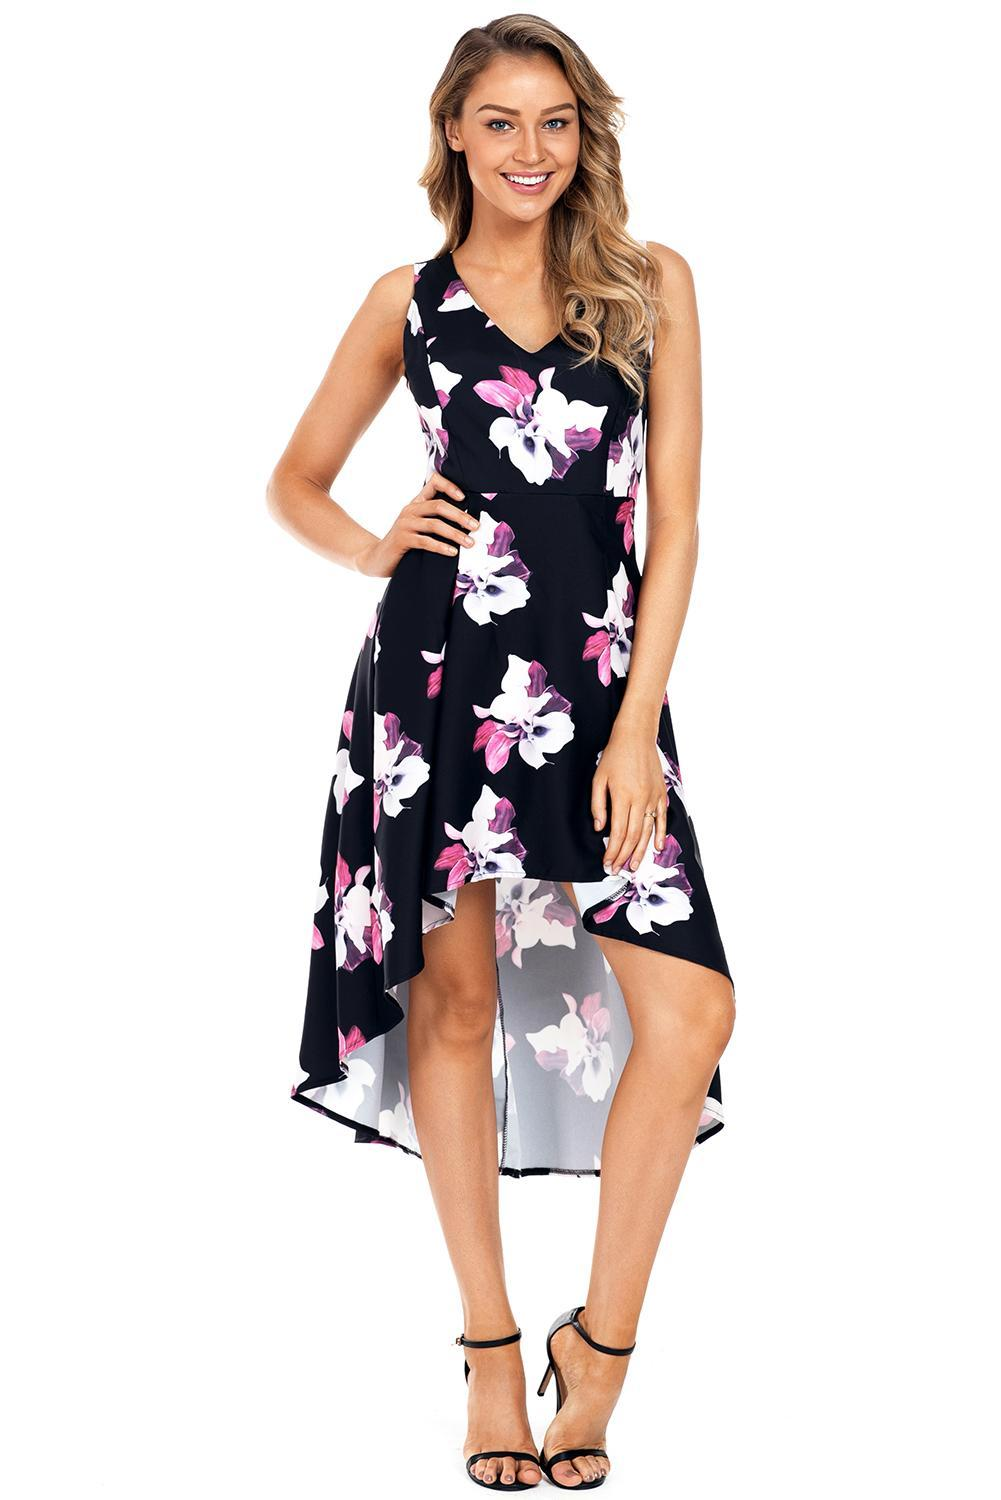 Women Clothing Designers The Best Fushcia Floral High Low Hem Midi Dress